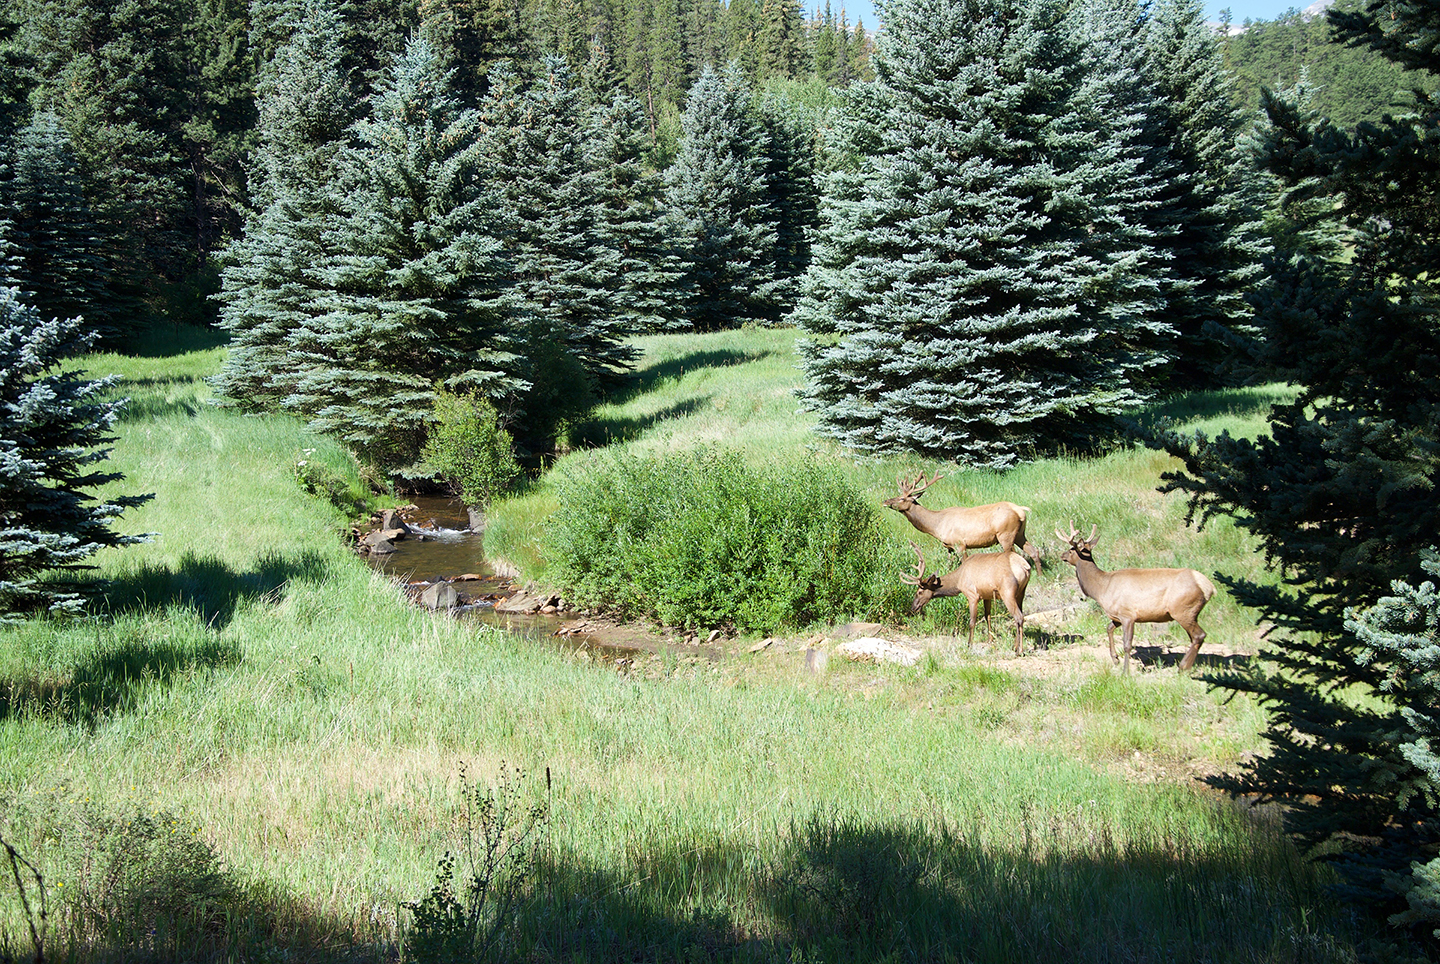 Painting plein air, three bull elks arrived, drank, and left without ever seeing me.